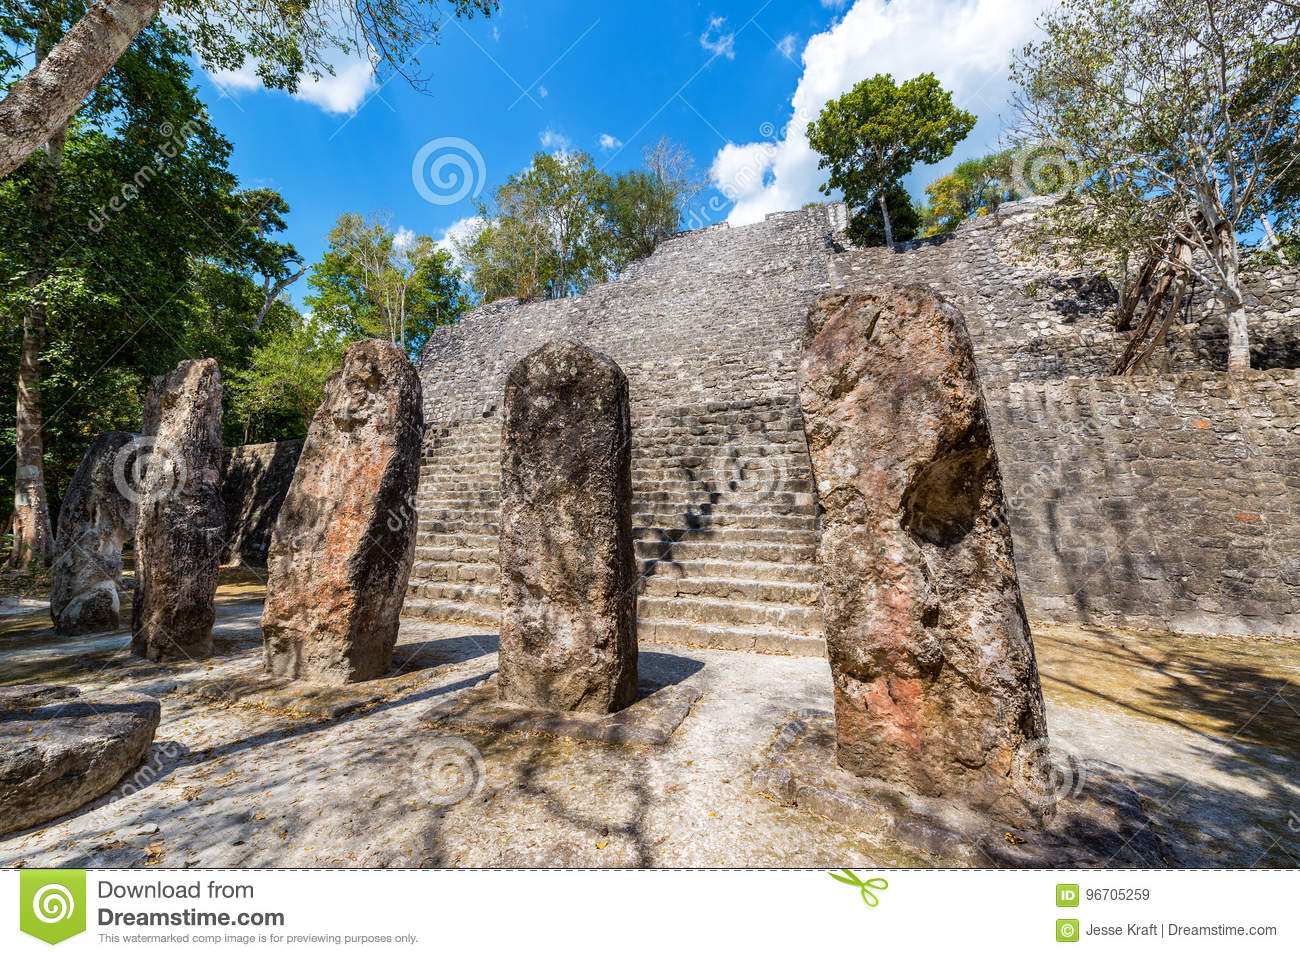 Stellae and Pyramid in Calakmul, Mexico